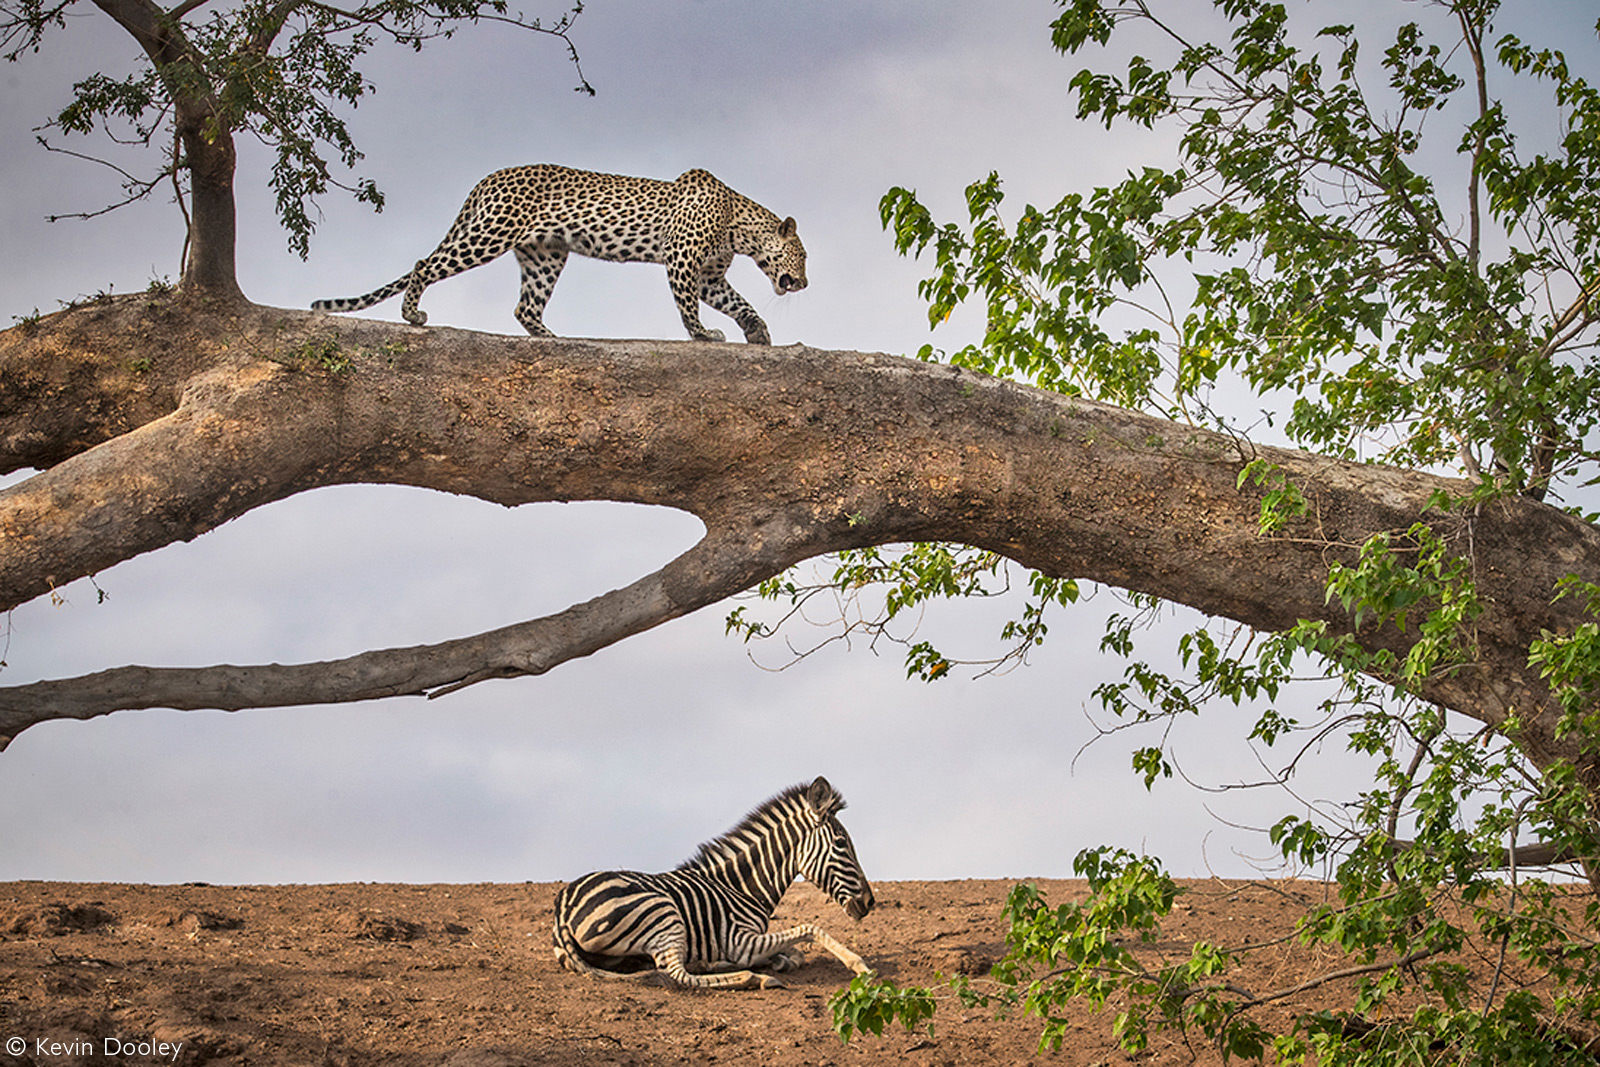 A leopard gets a better view after finding a zebra colt. Mashatu Game Reserve, Botswana © Kevin Dooley